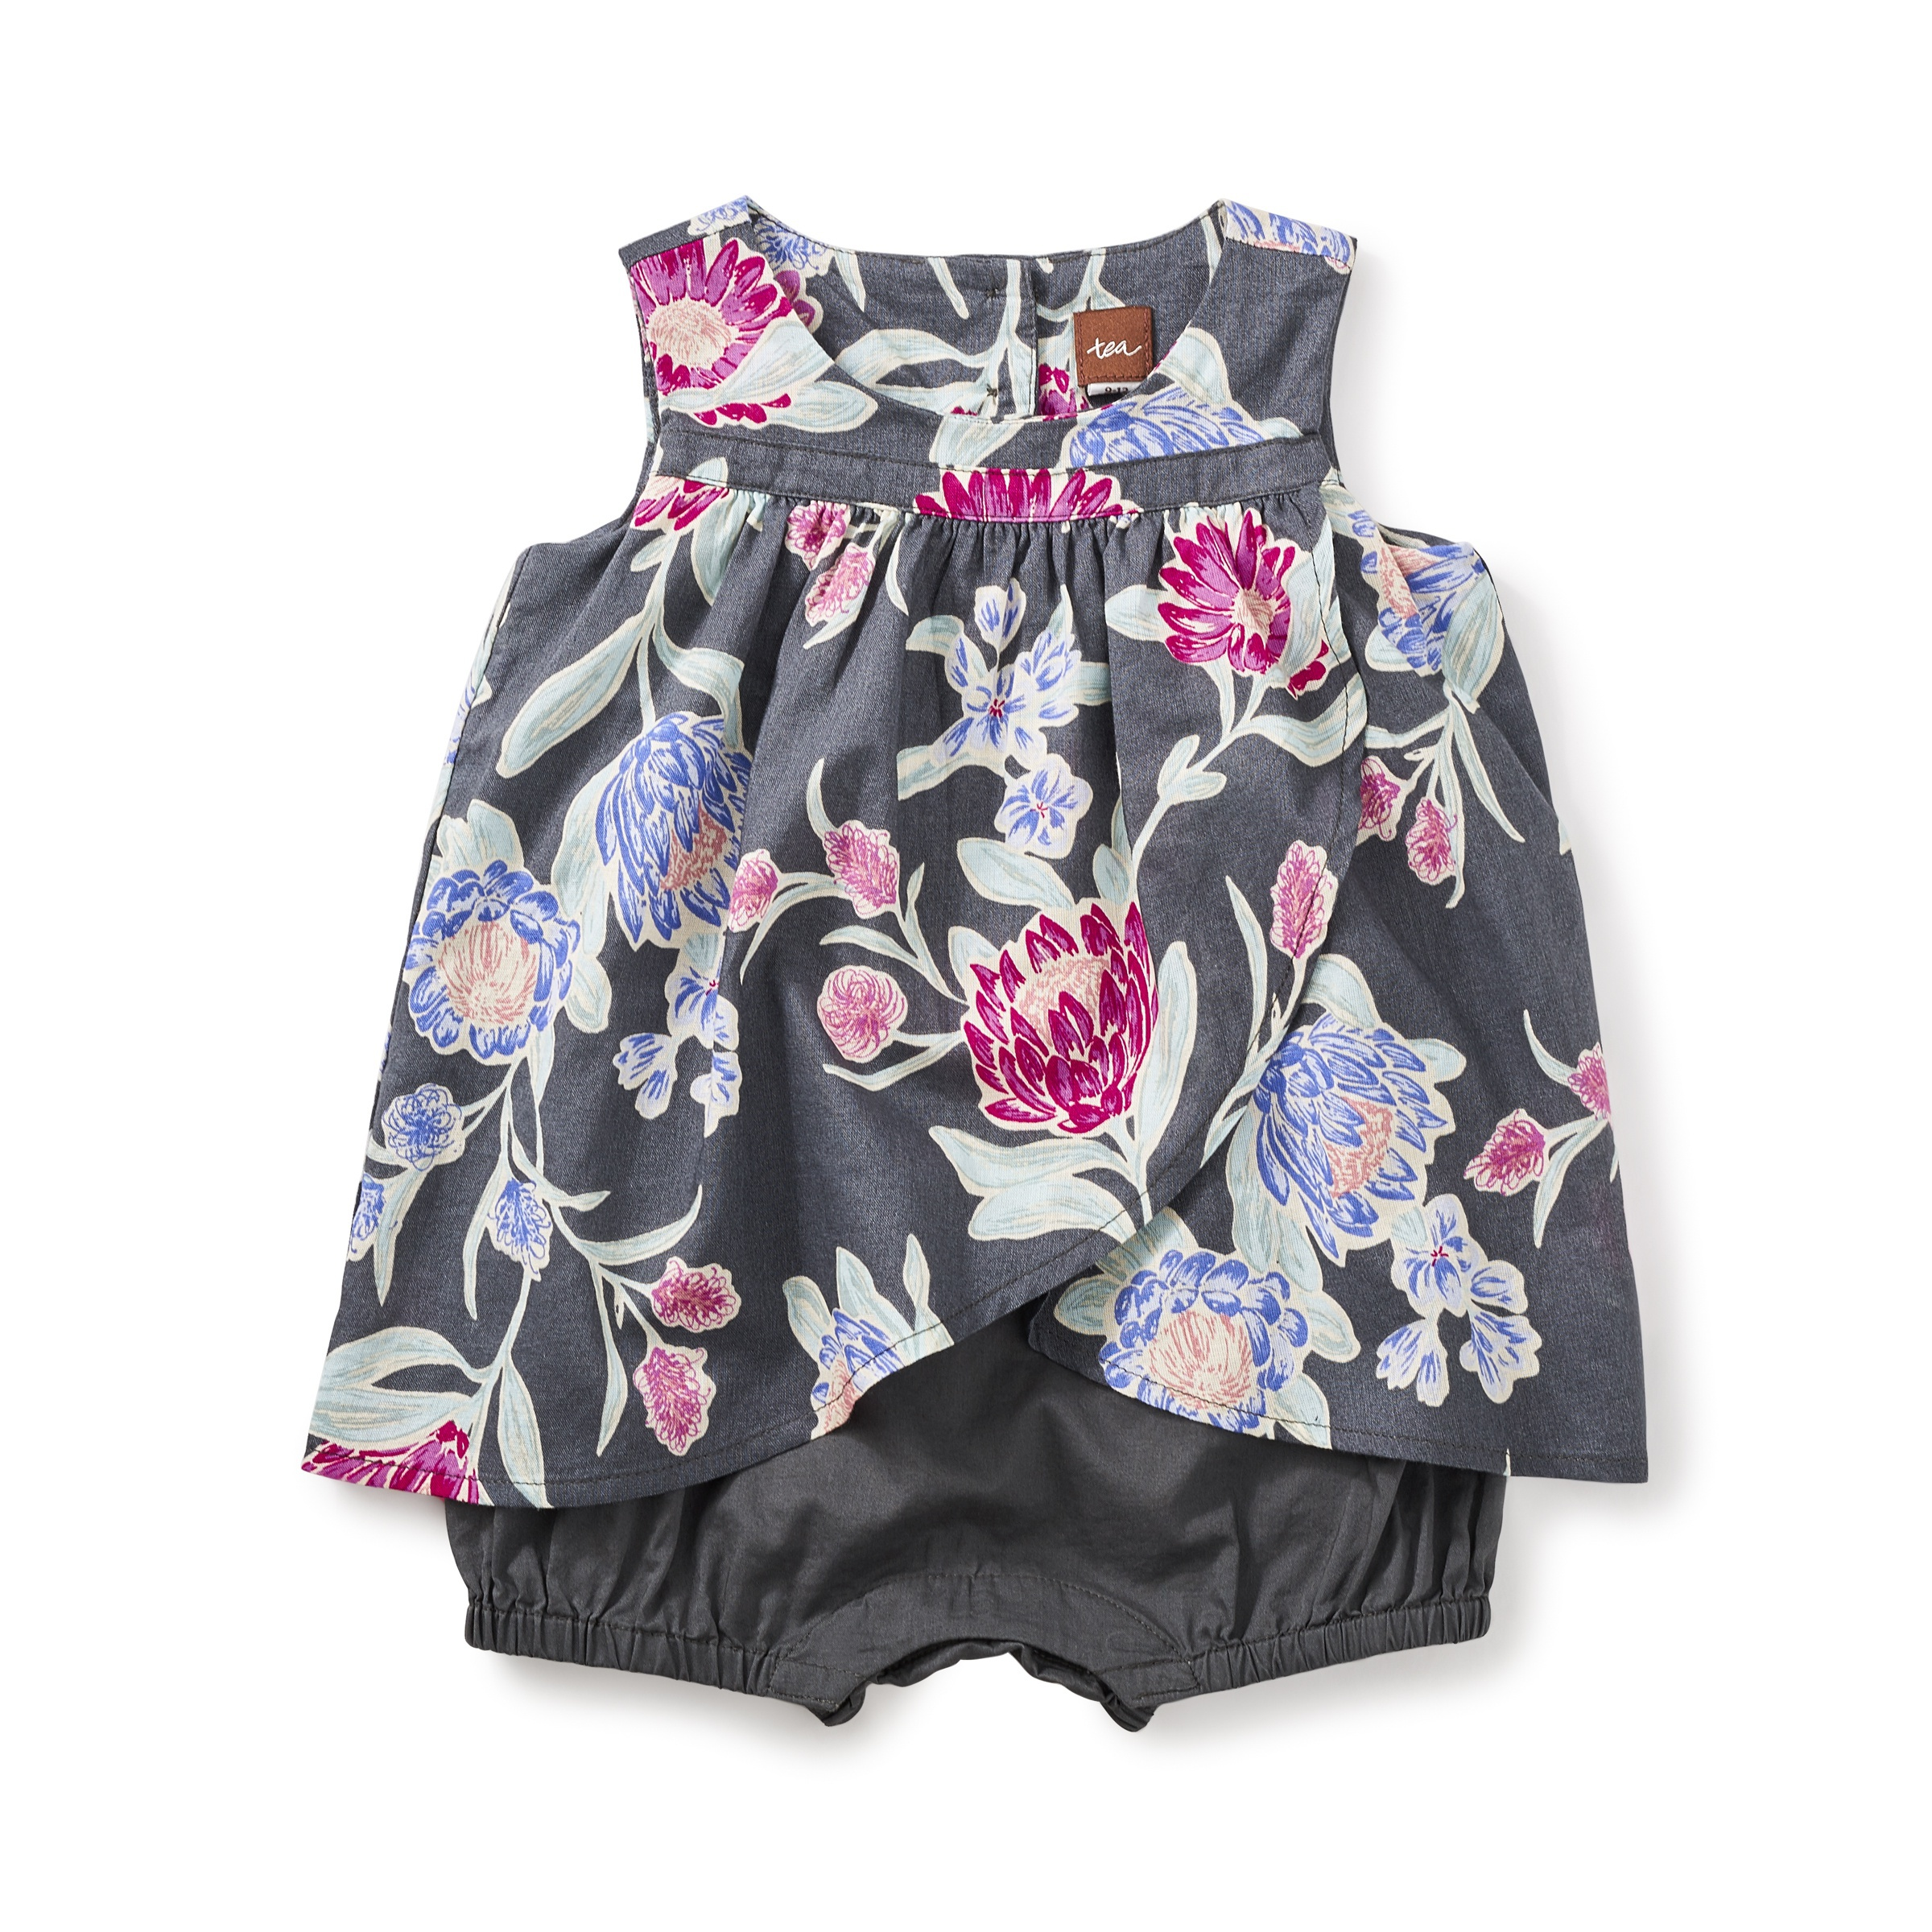 Baby Girl Clothes &amp- Newborn Baby Girls Clothing - Tea Collection